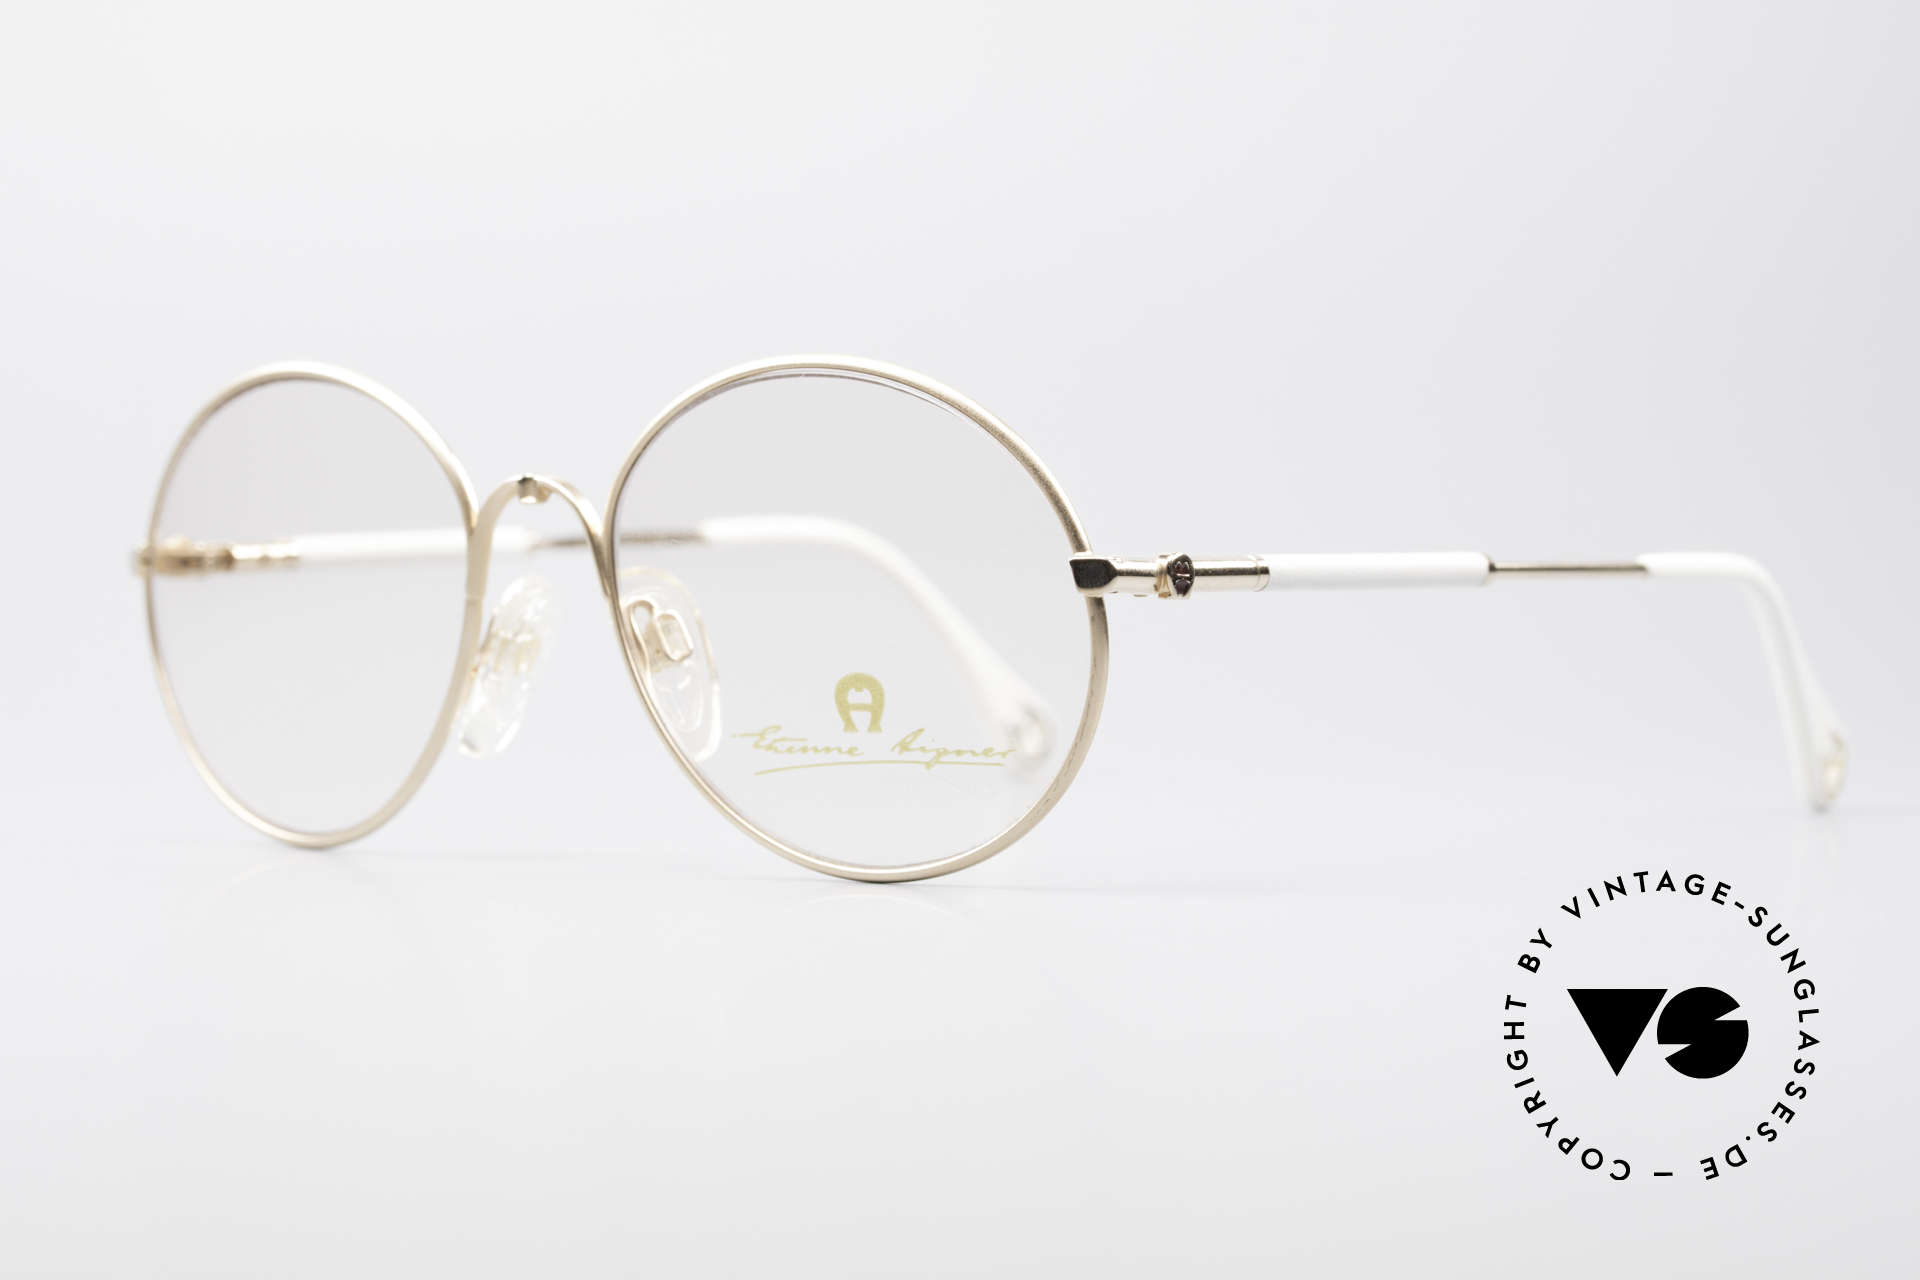 Aigner EA13 Small Round 80's Eyeglasses, true luxury vintage eyewear - just precious & rare, Made for Women